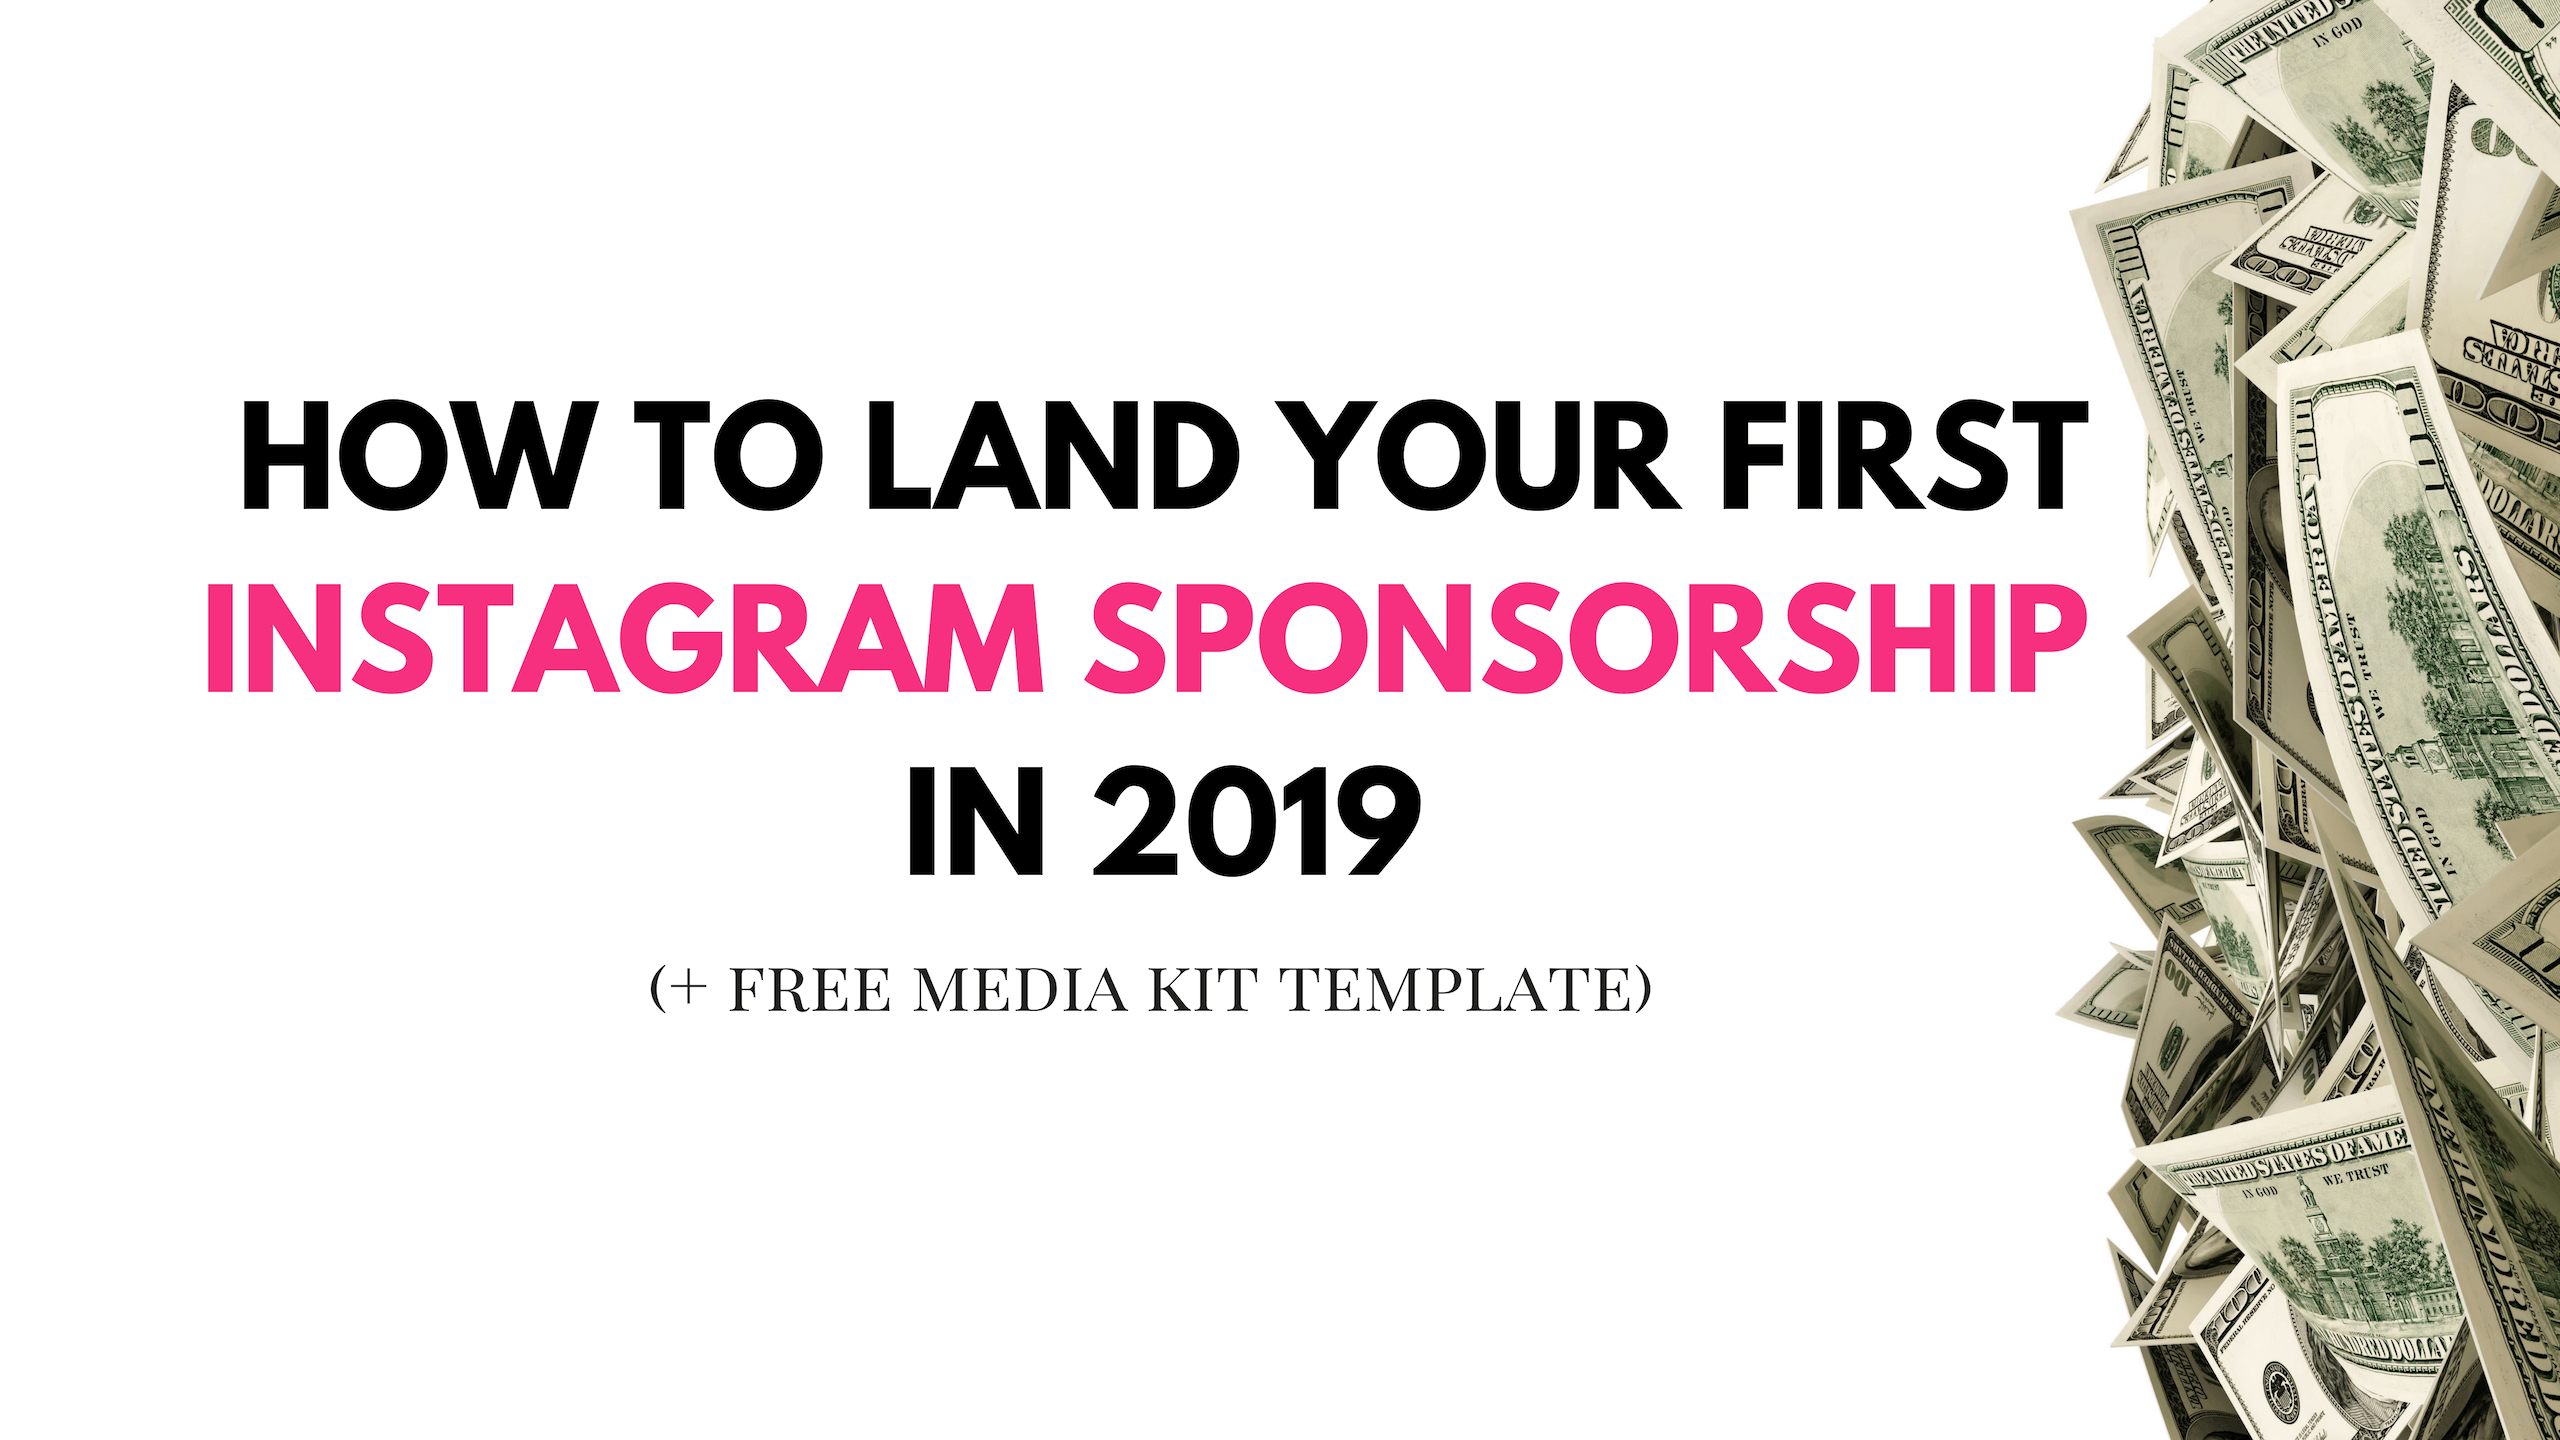 How To Land Your First Instagram Sponsorship (+ Media Kit